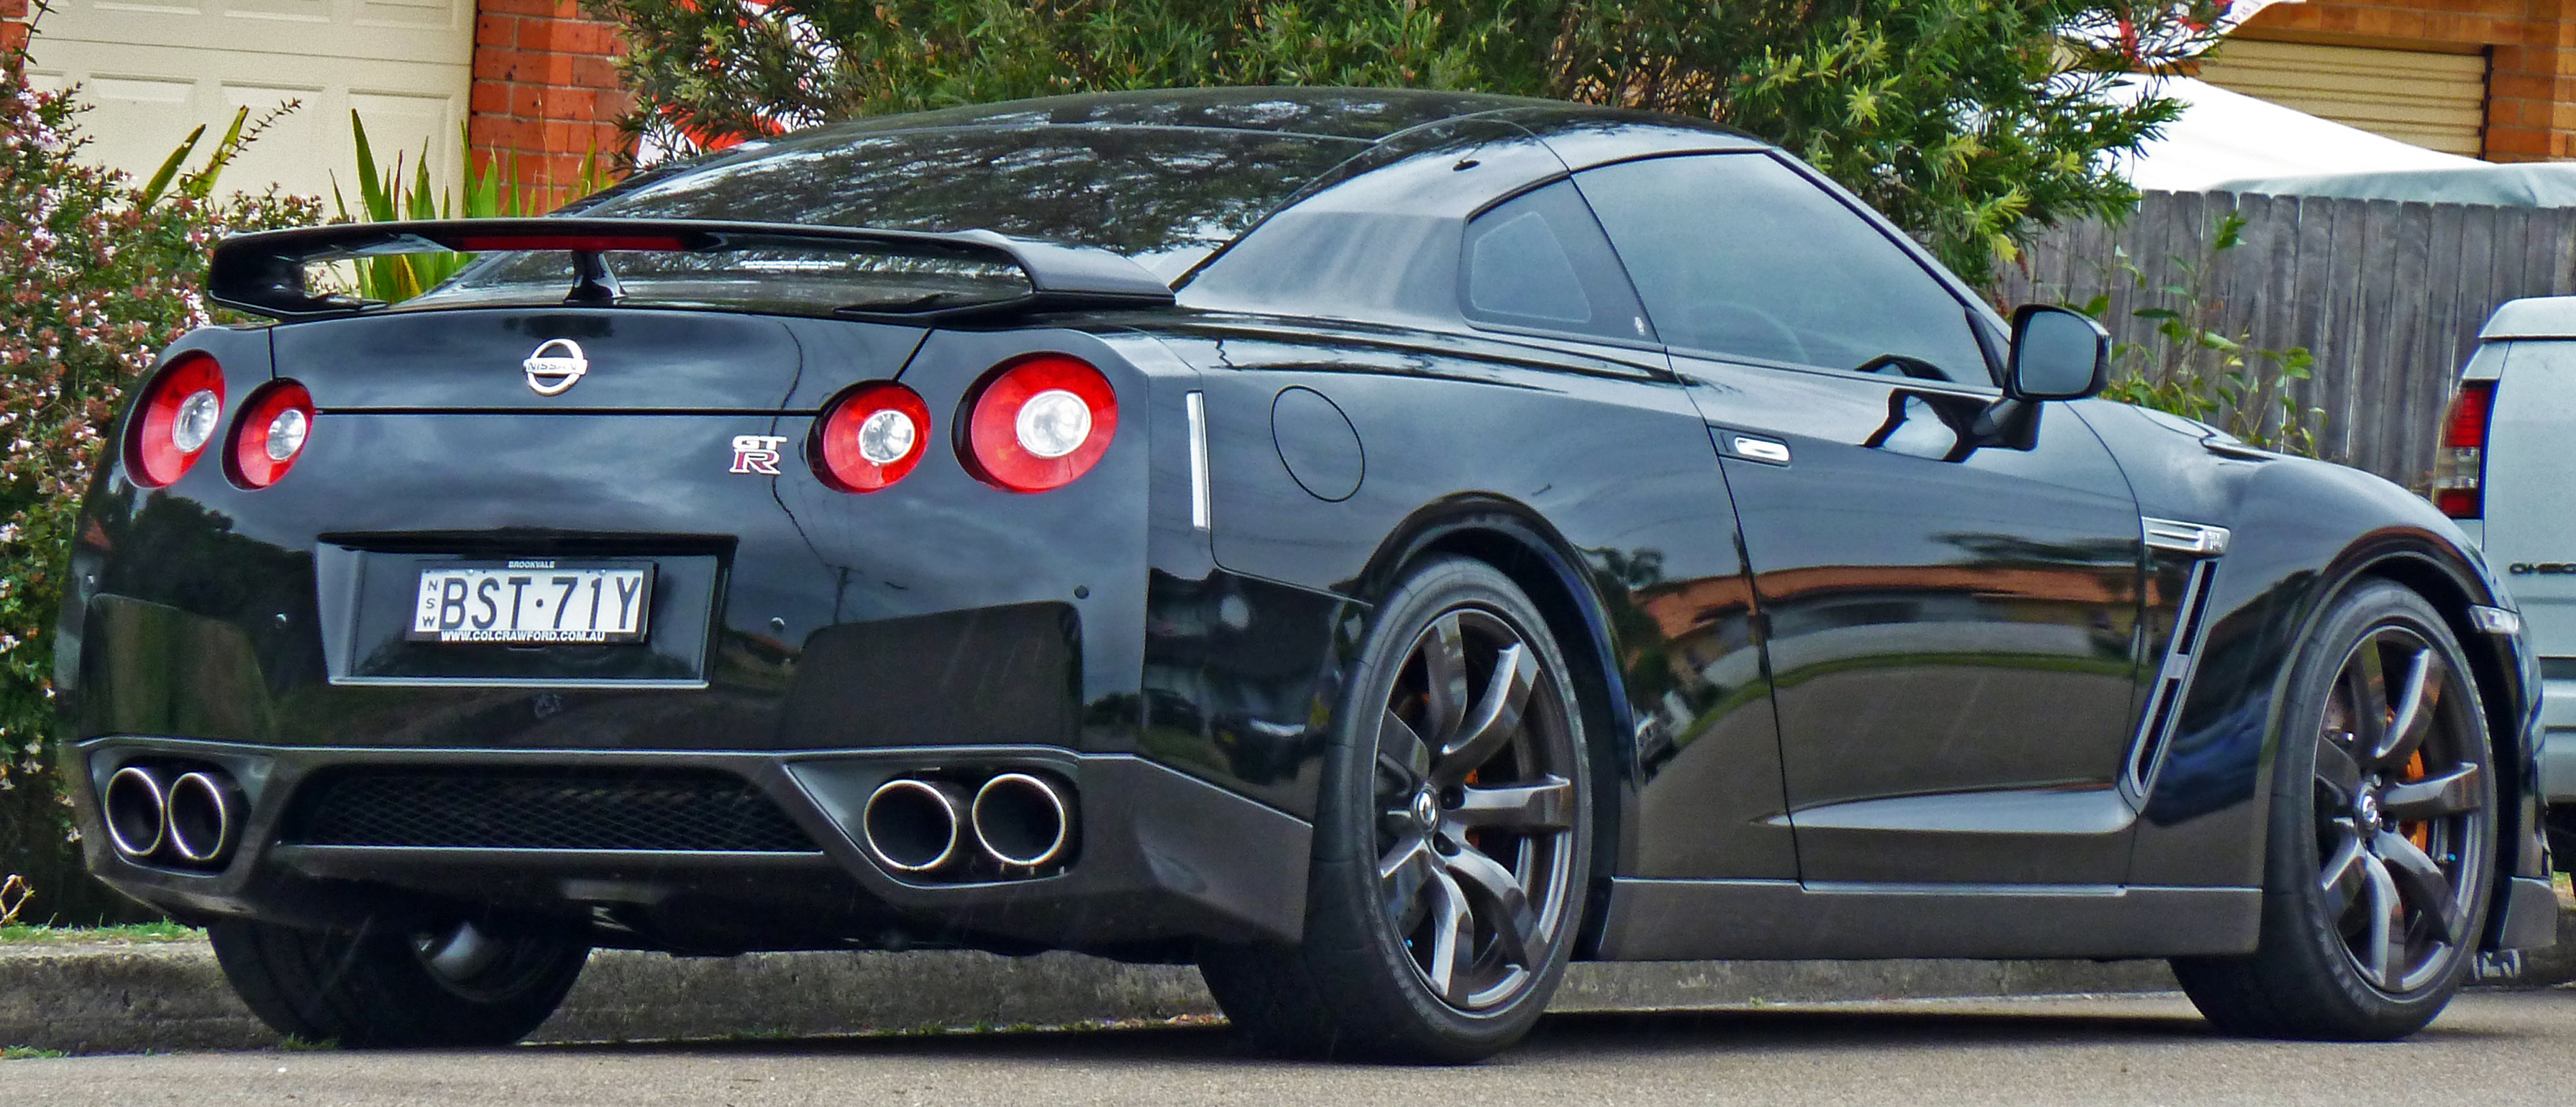 file 2009 2010 nissan gt r r35 coupe wikimedia. Black Bedroom Furniture Sets. Home Design Ideas